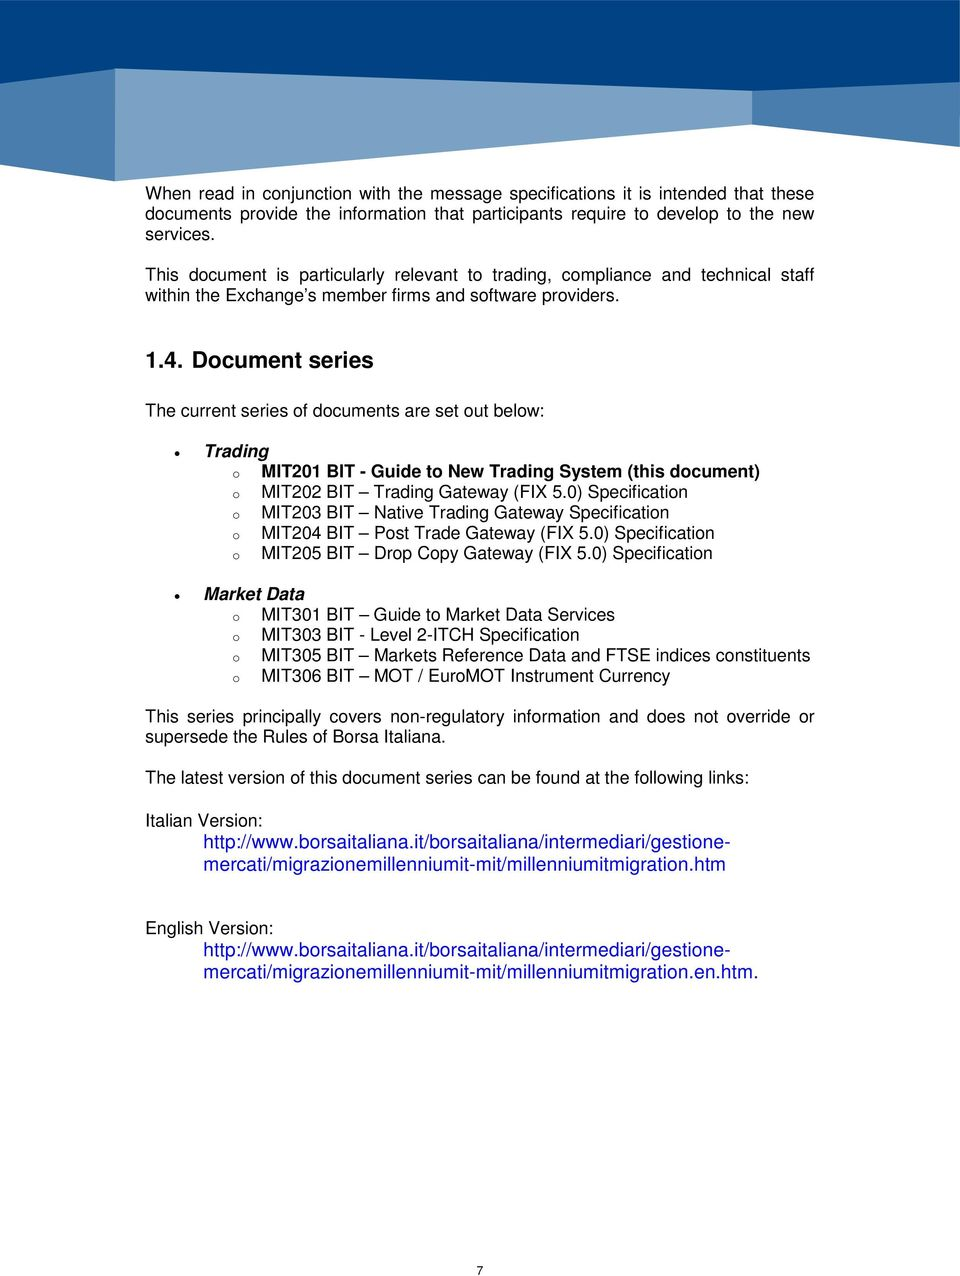 Document series The current series of documents are set out below: Trading o MIT201 BIT - Guide to New Trading System (this document) o MIT202 BIT Trading Gateway (FIX 5.